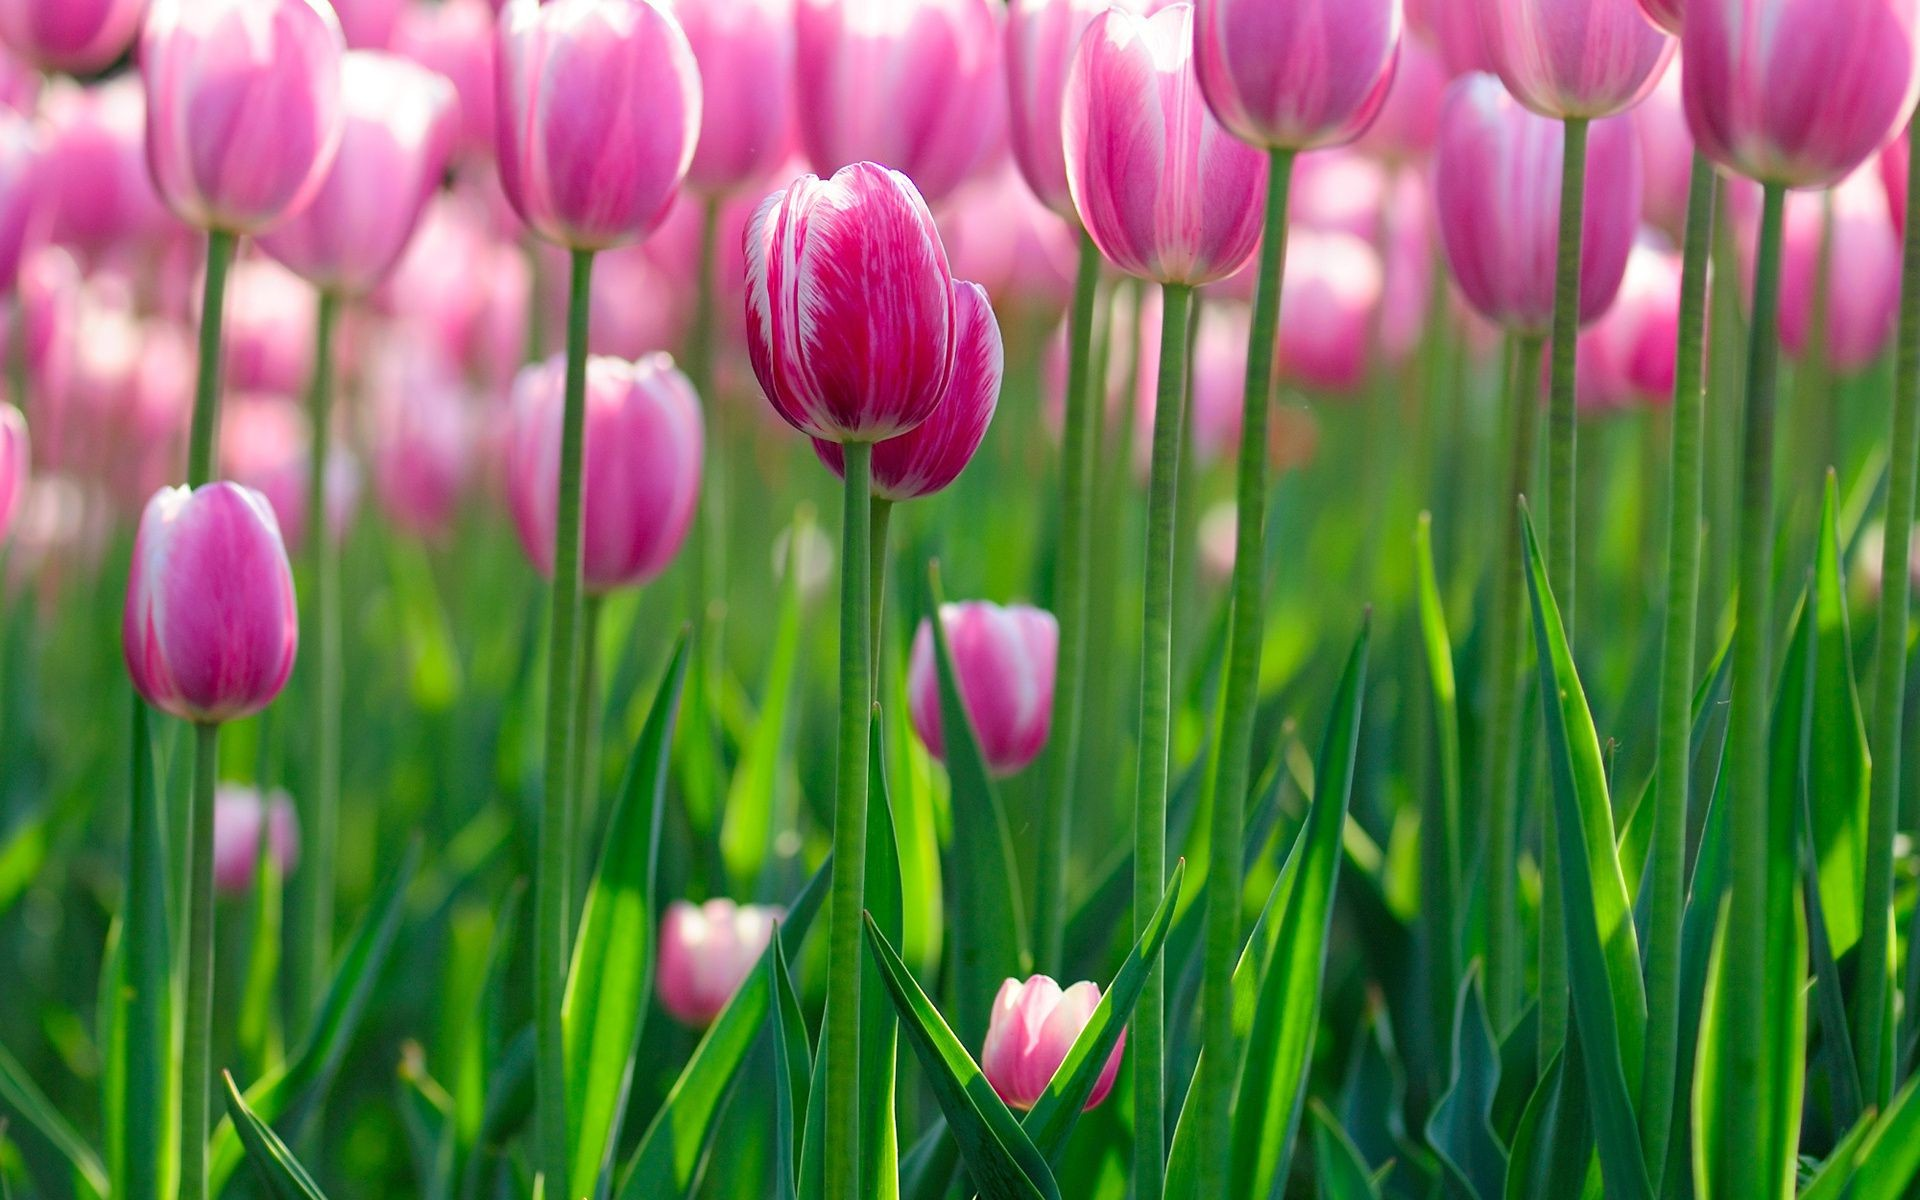 Flowers Tulips bokeh flowers wallpapers flower flo. Android wallpapers for free.